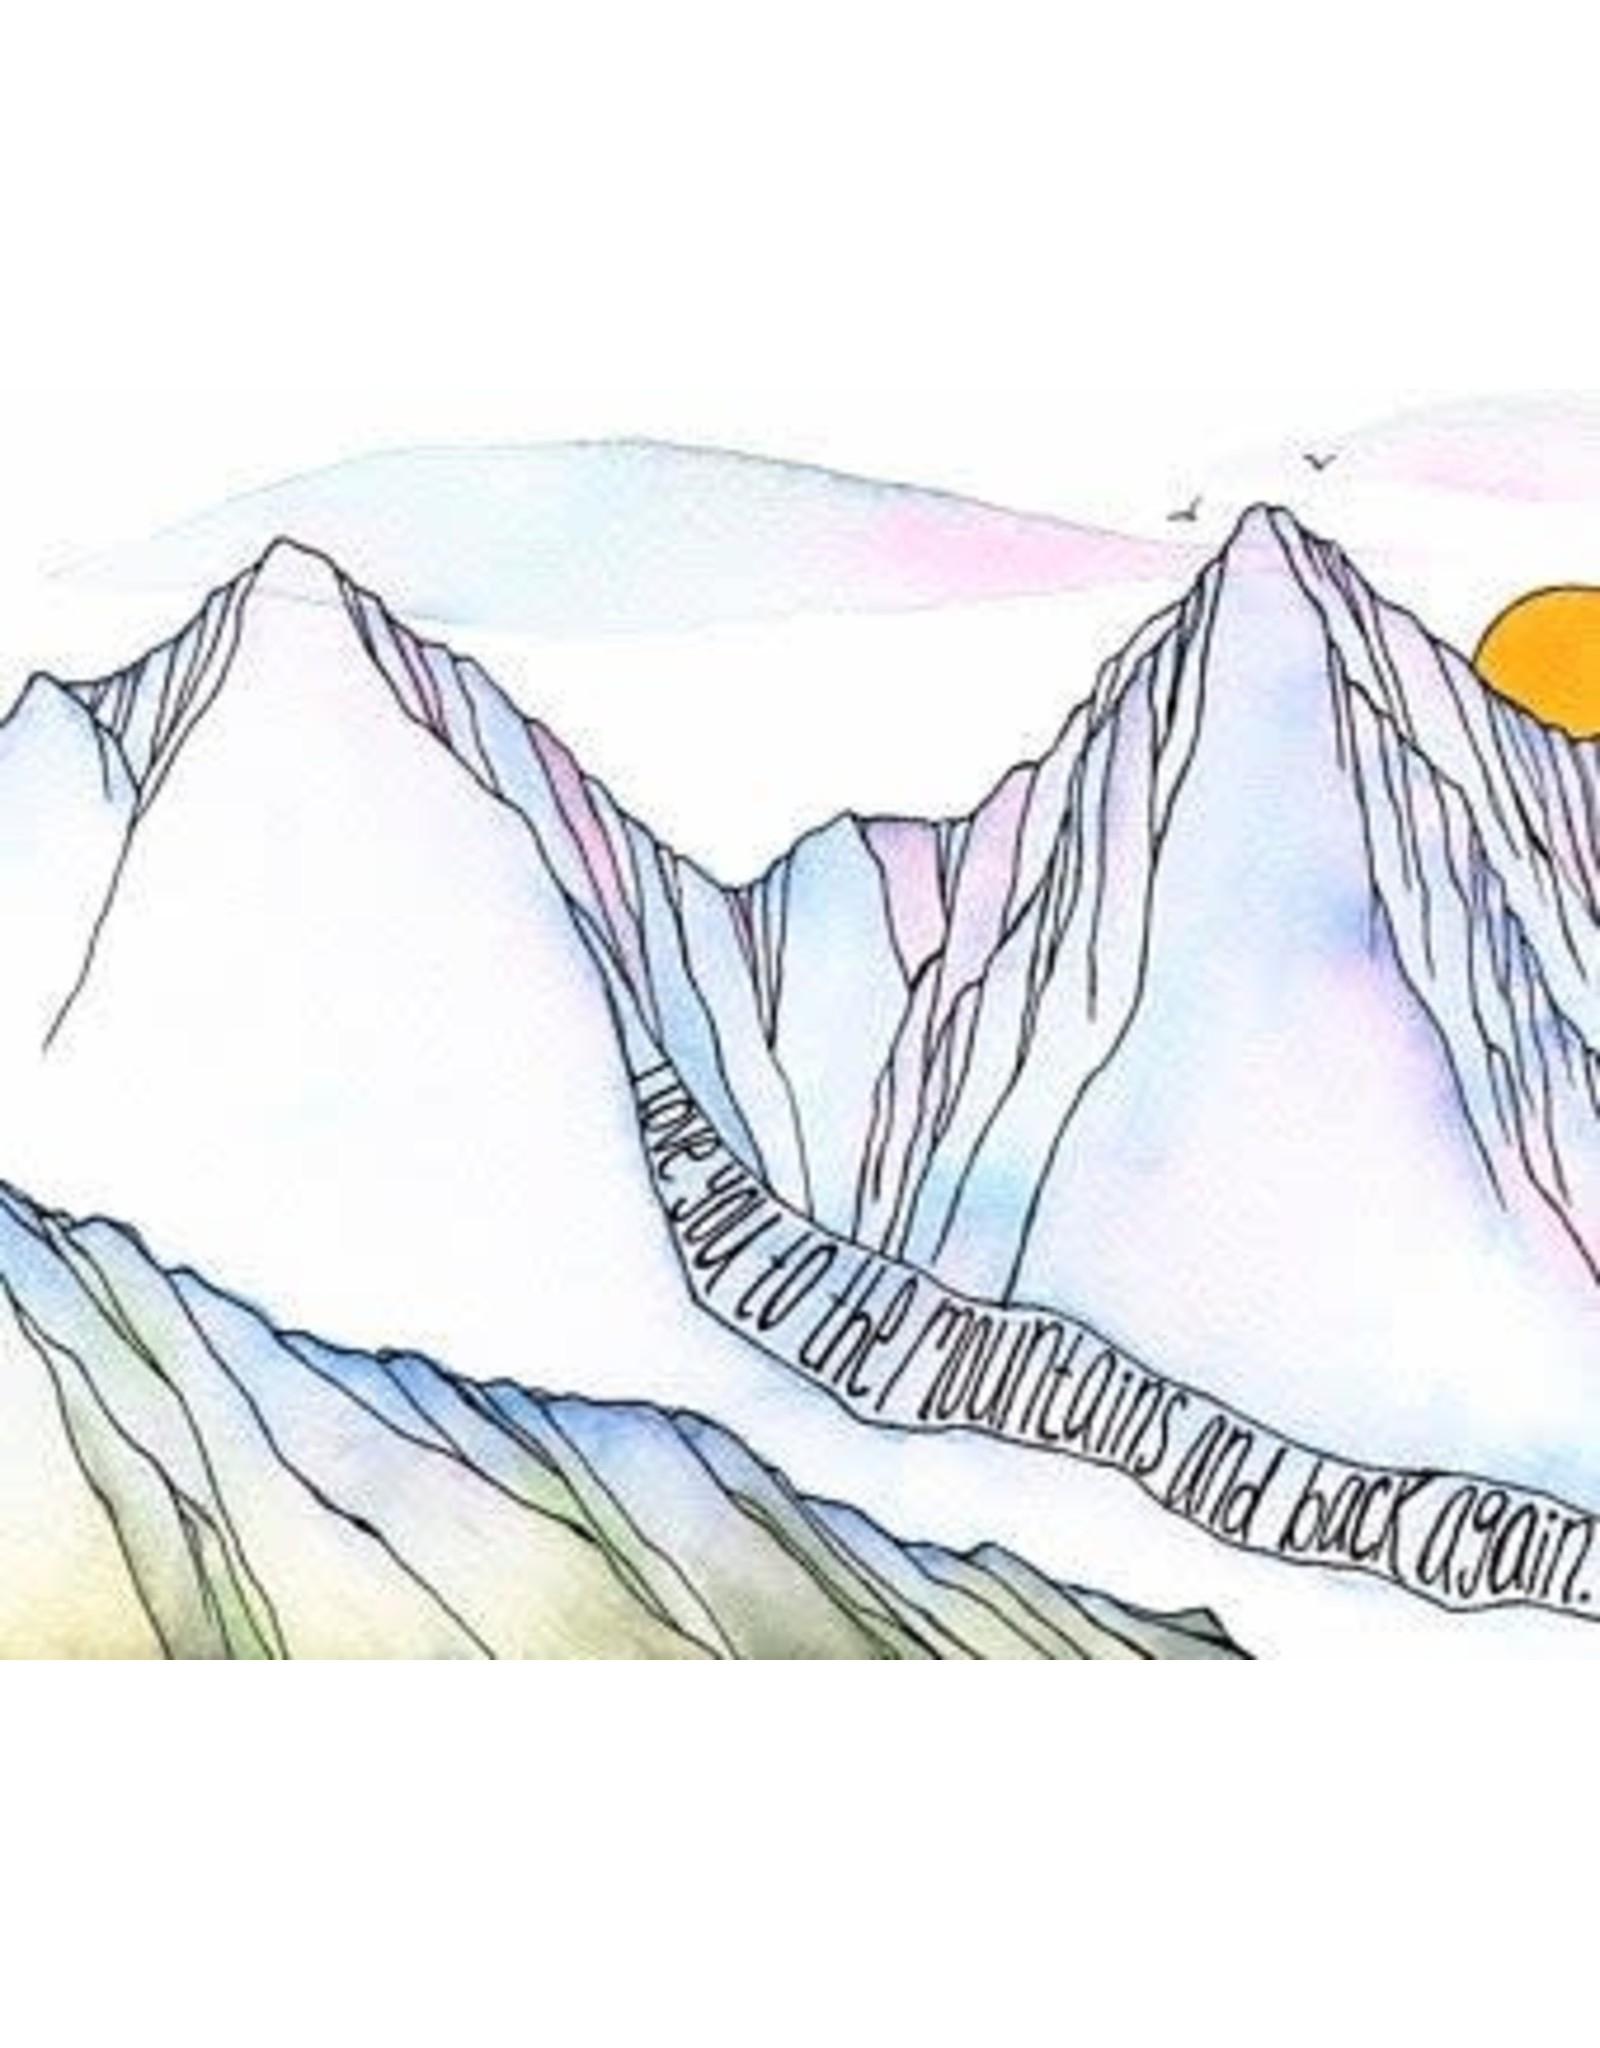 Elevate Art Studio I Love You to the Mountains and Back Again | Kelsey Fagan